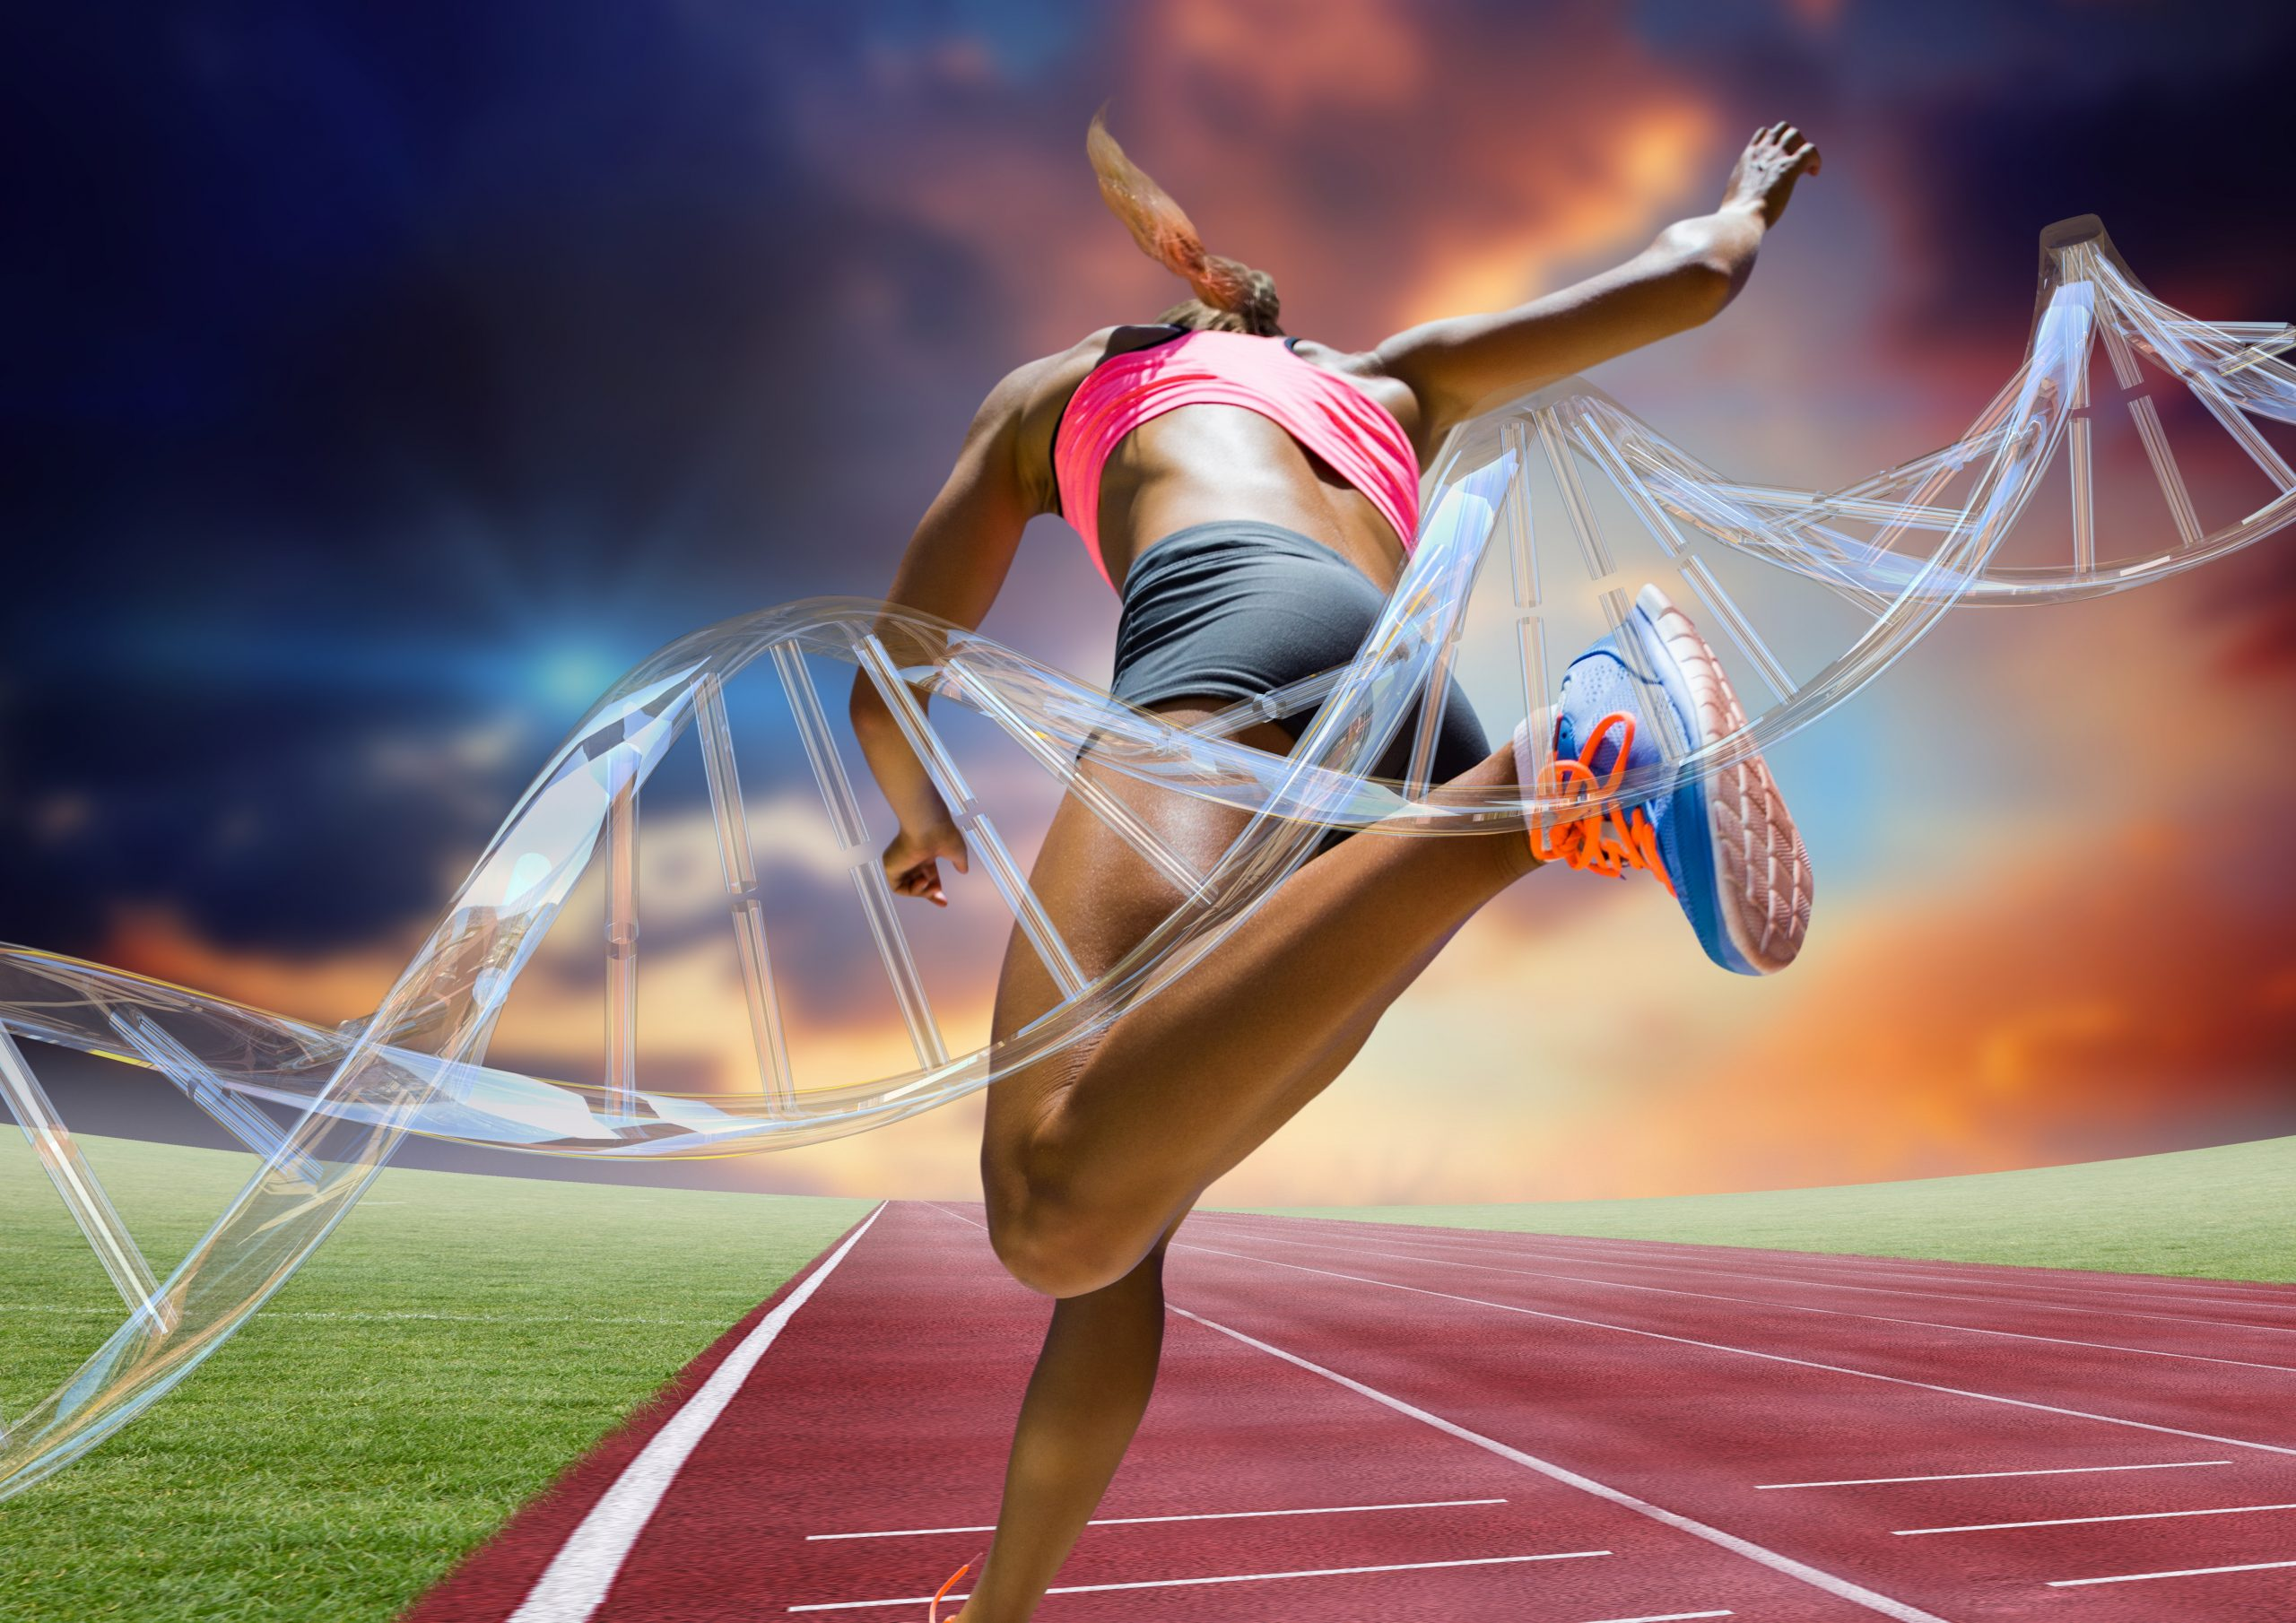 Woman running on a racetrack with a DNA molecule in the foreground